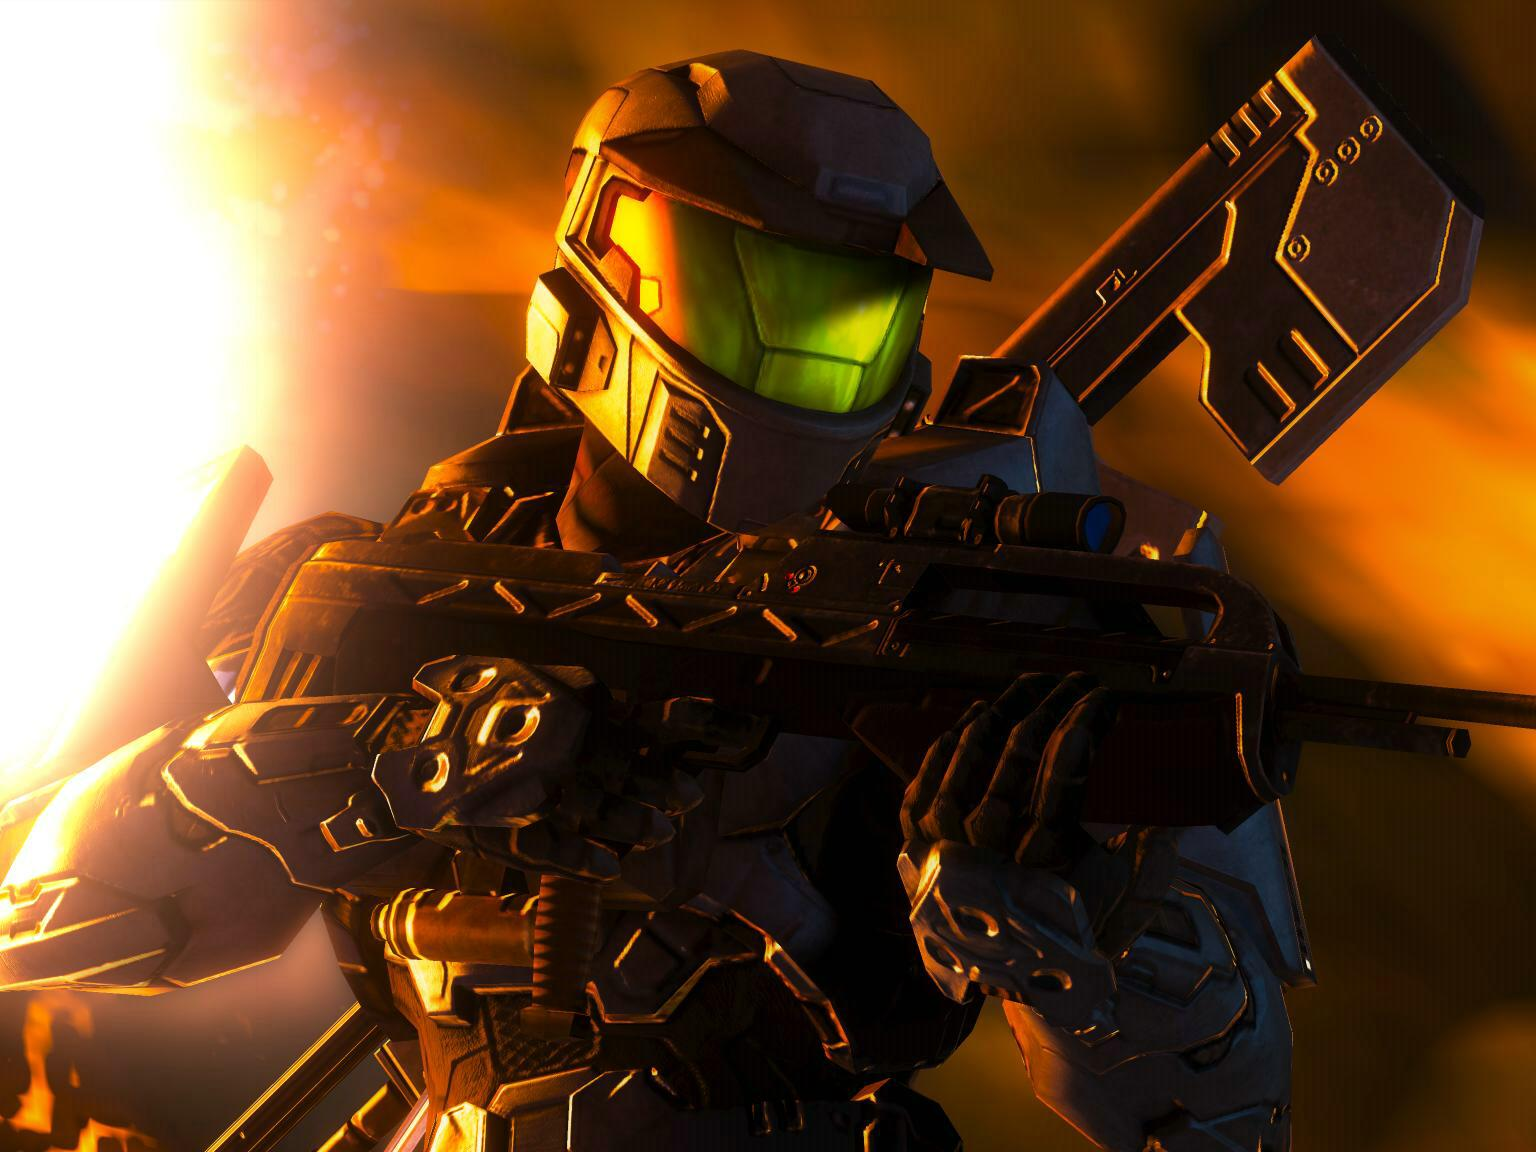 Chibi Halo 2 ODSTs 139856630 moreover 498914464943889260 in addition Halo3UserContentDetails furthermore Halo Re together with Didact. on odst in cartoon